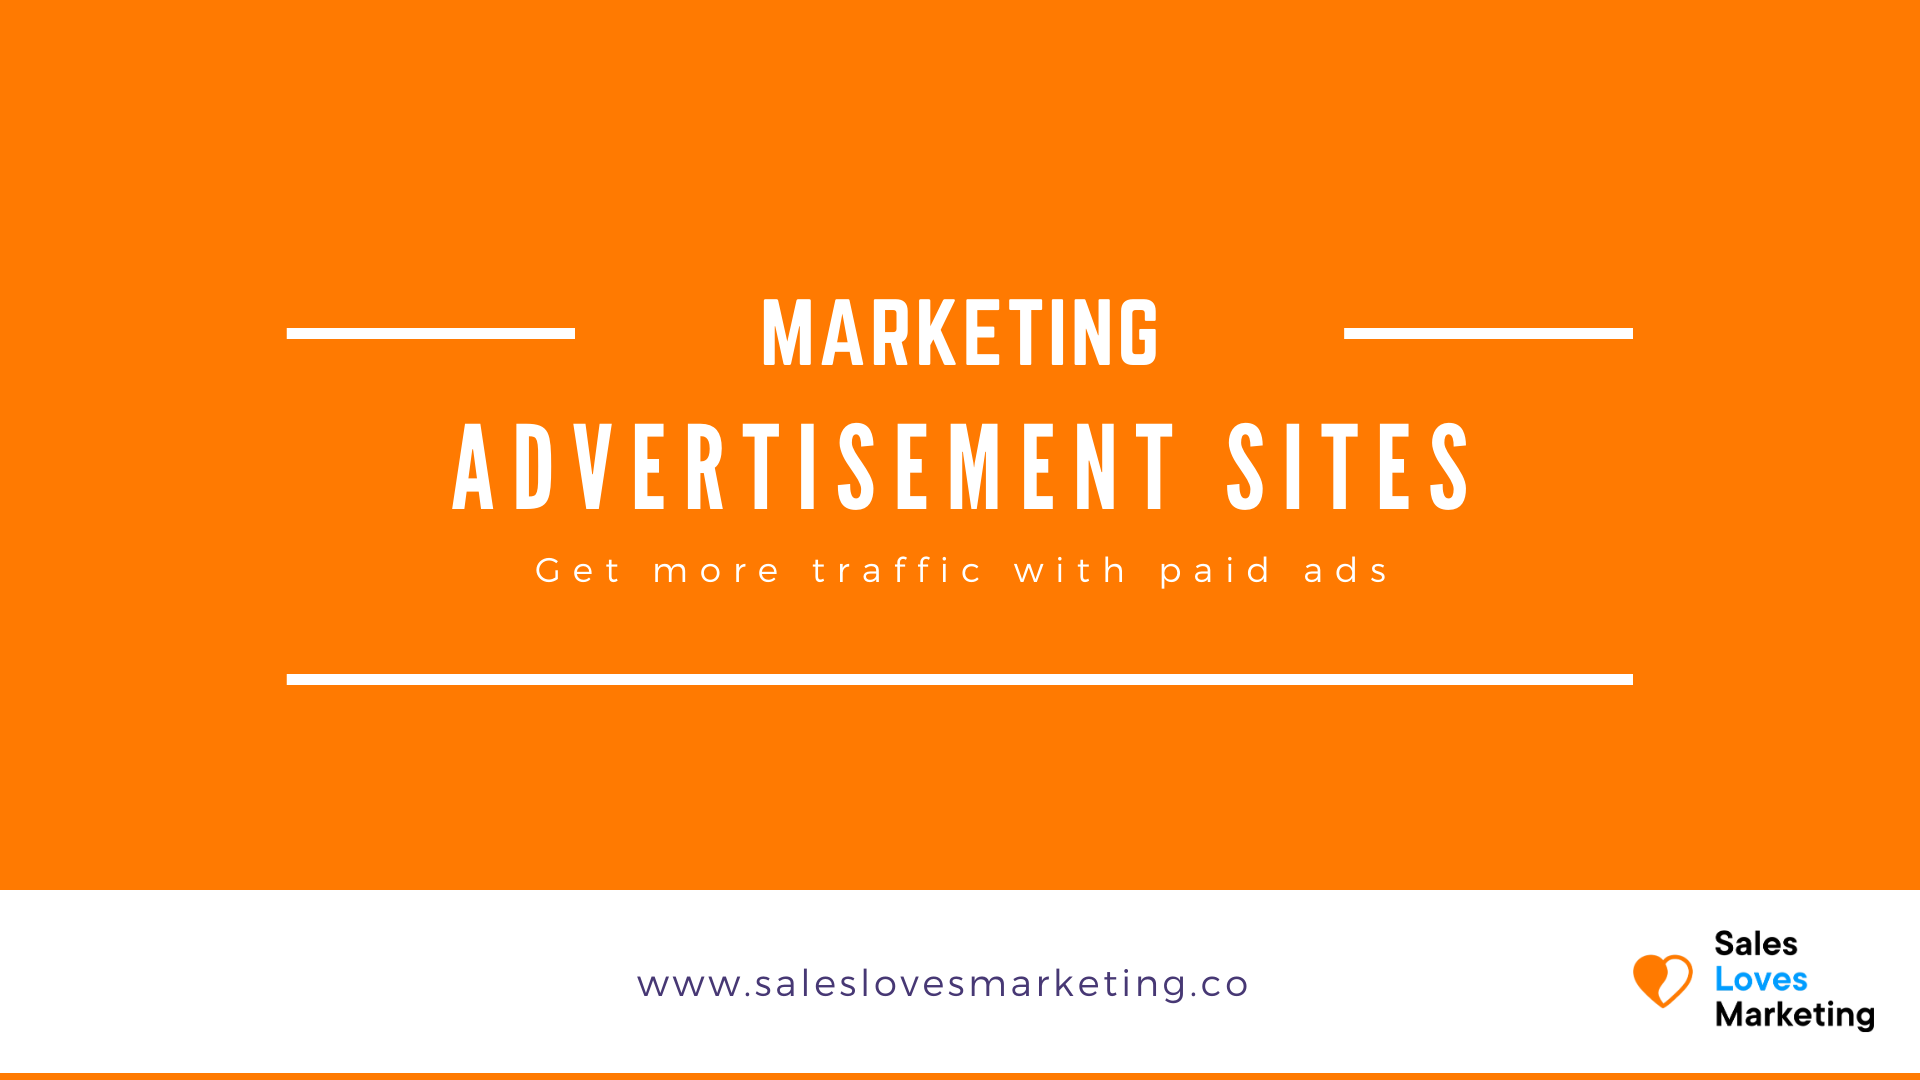 See which advertisements platforms are interesting for B2B companies.